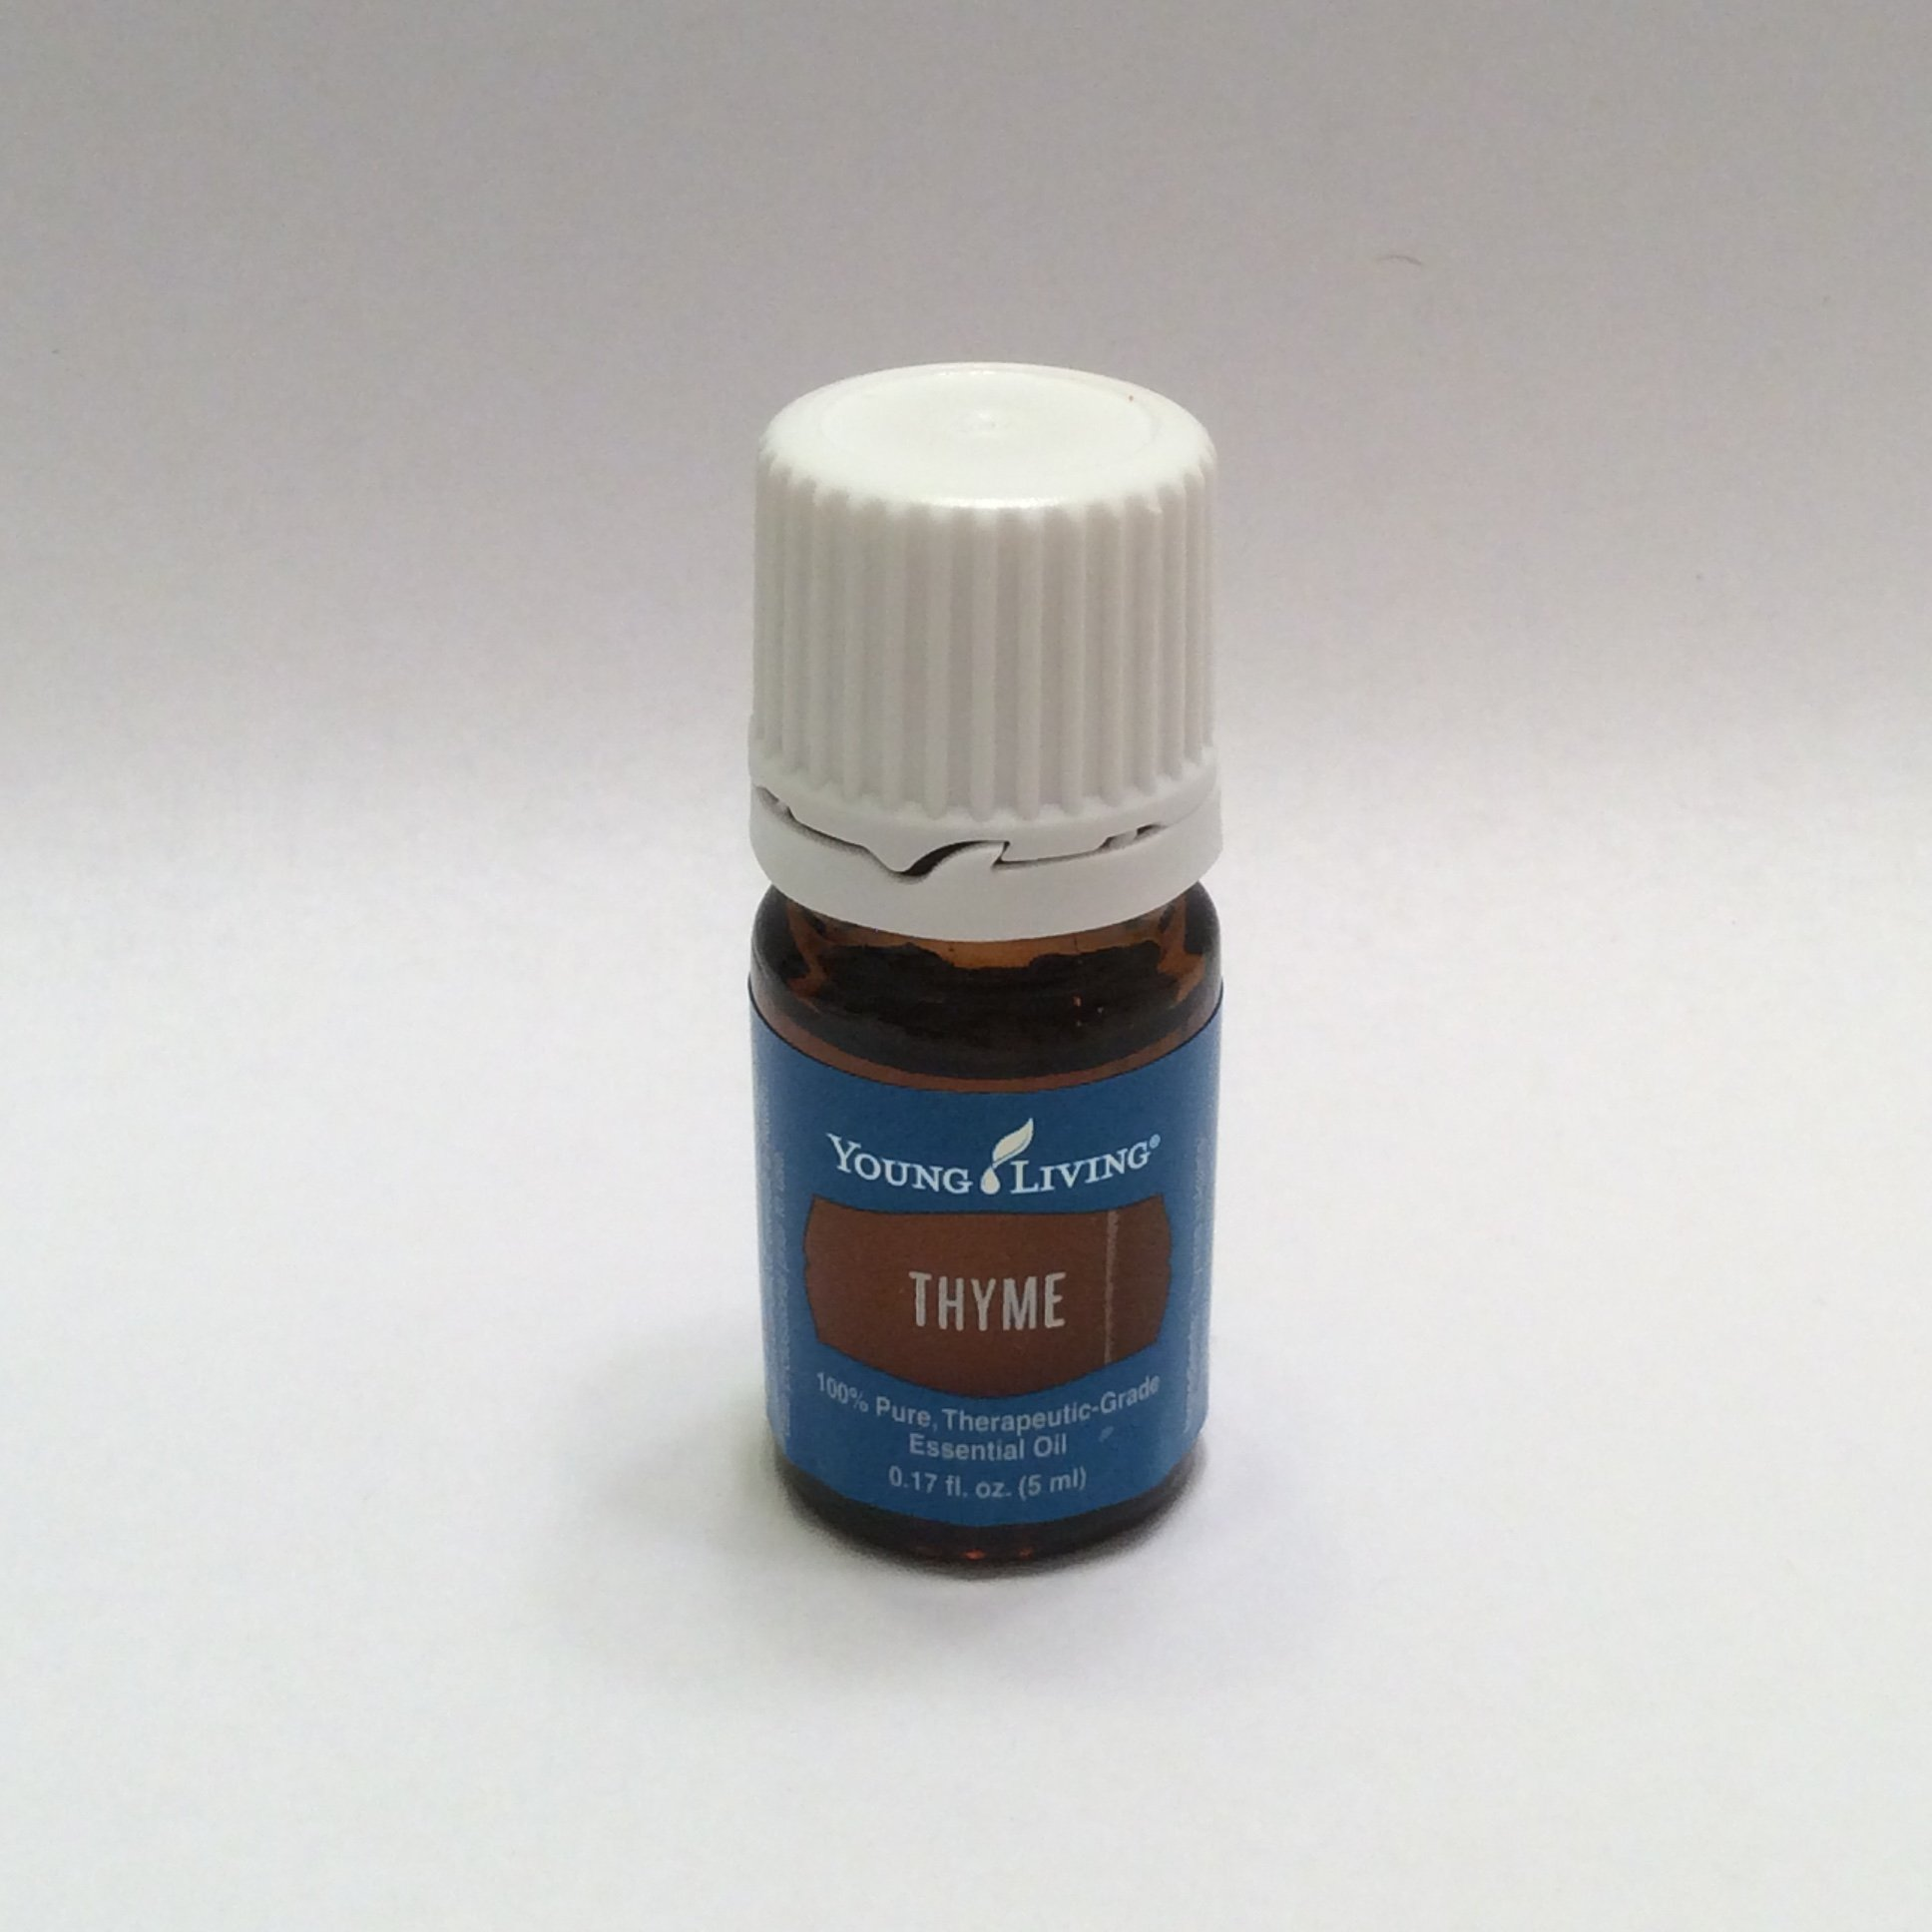 Thyme Essential Oil 5ml by Young Living Essential Oils